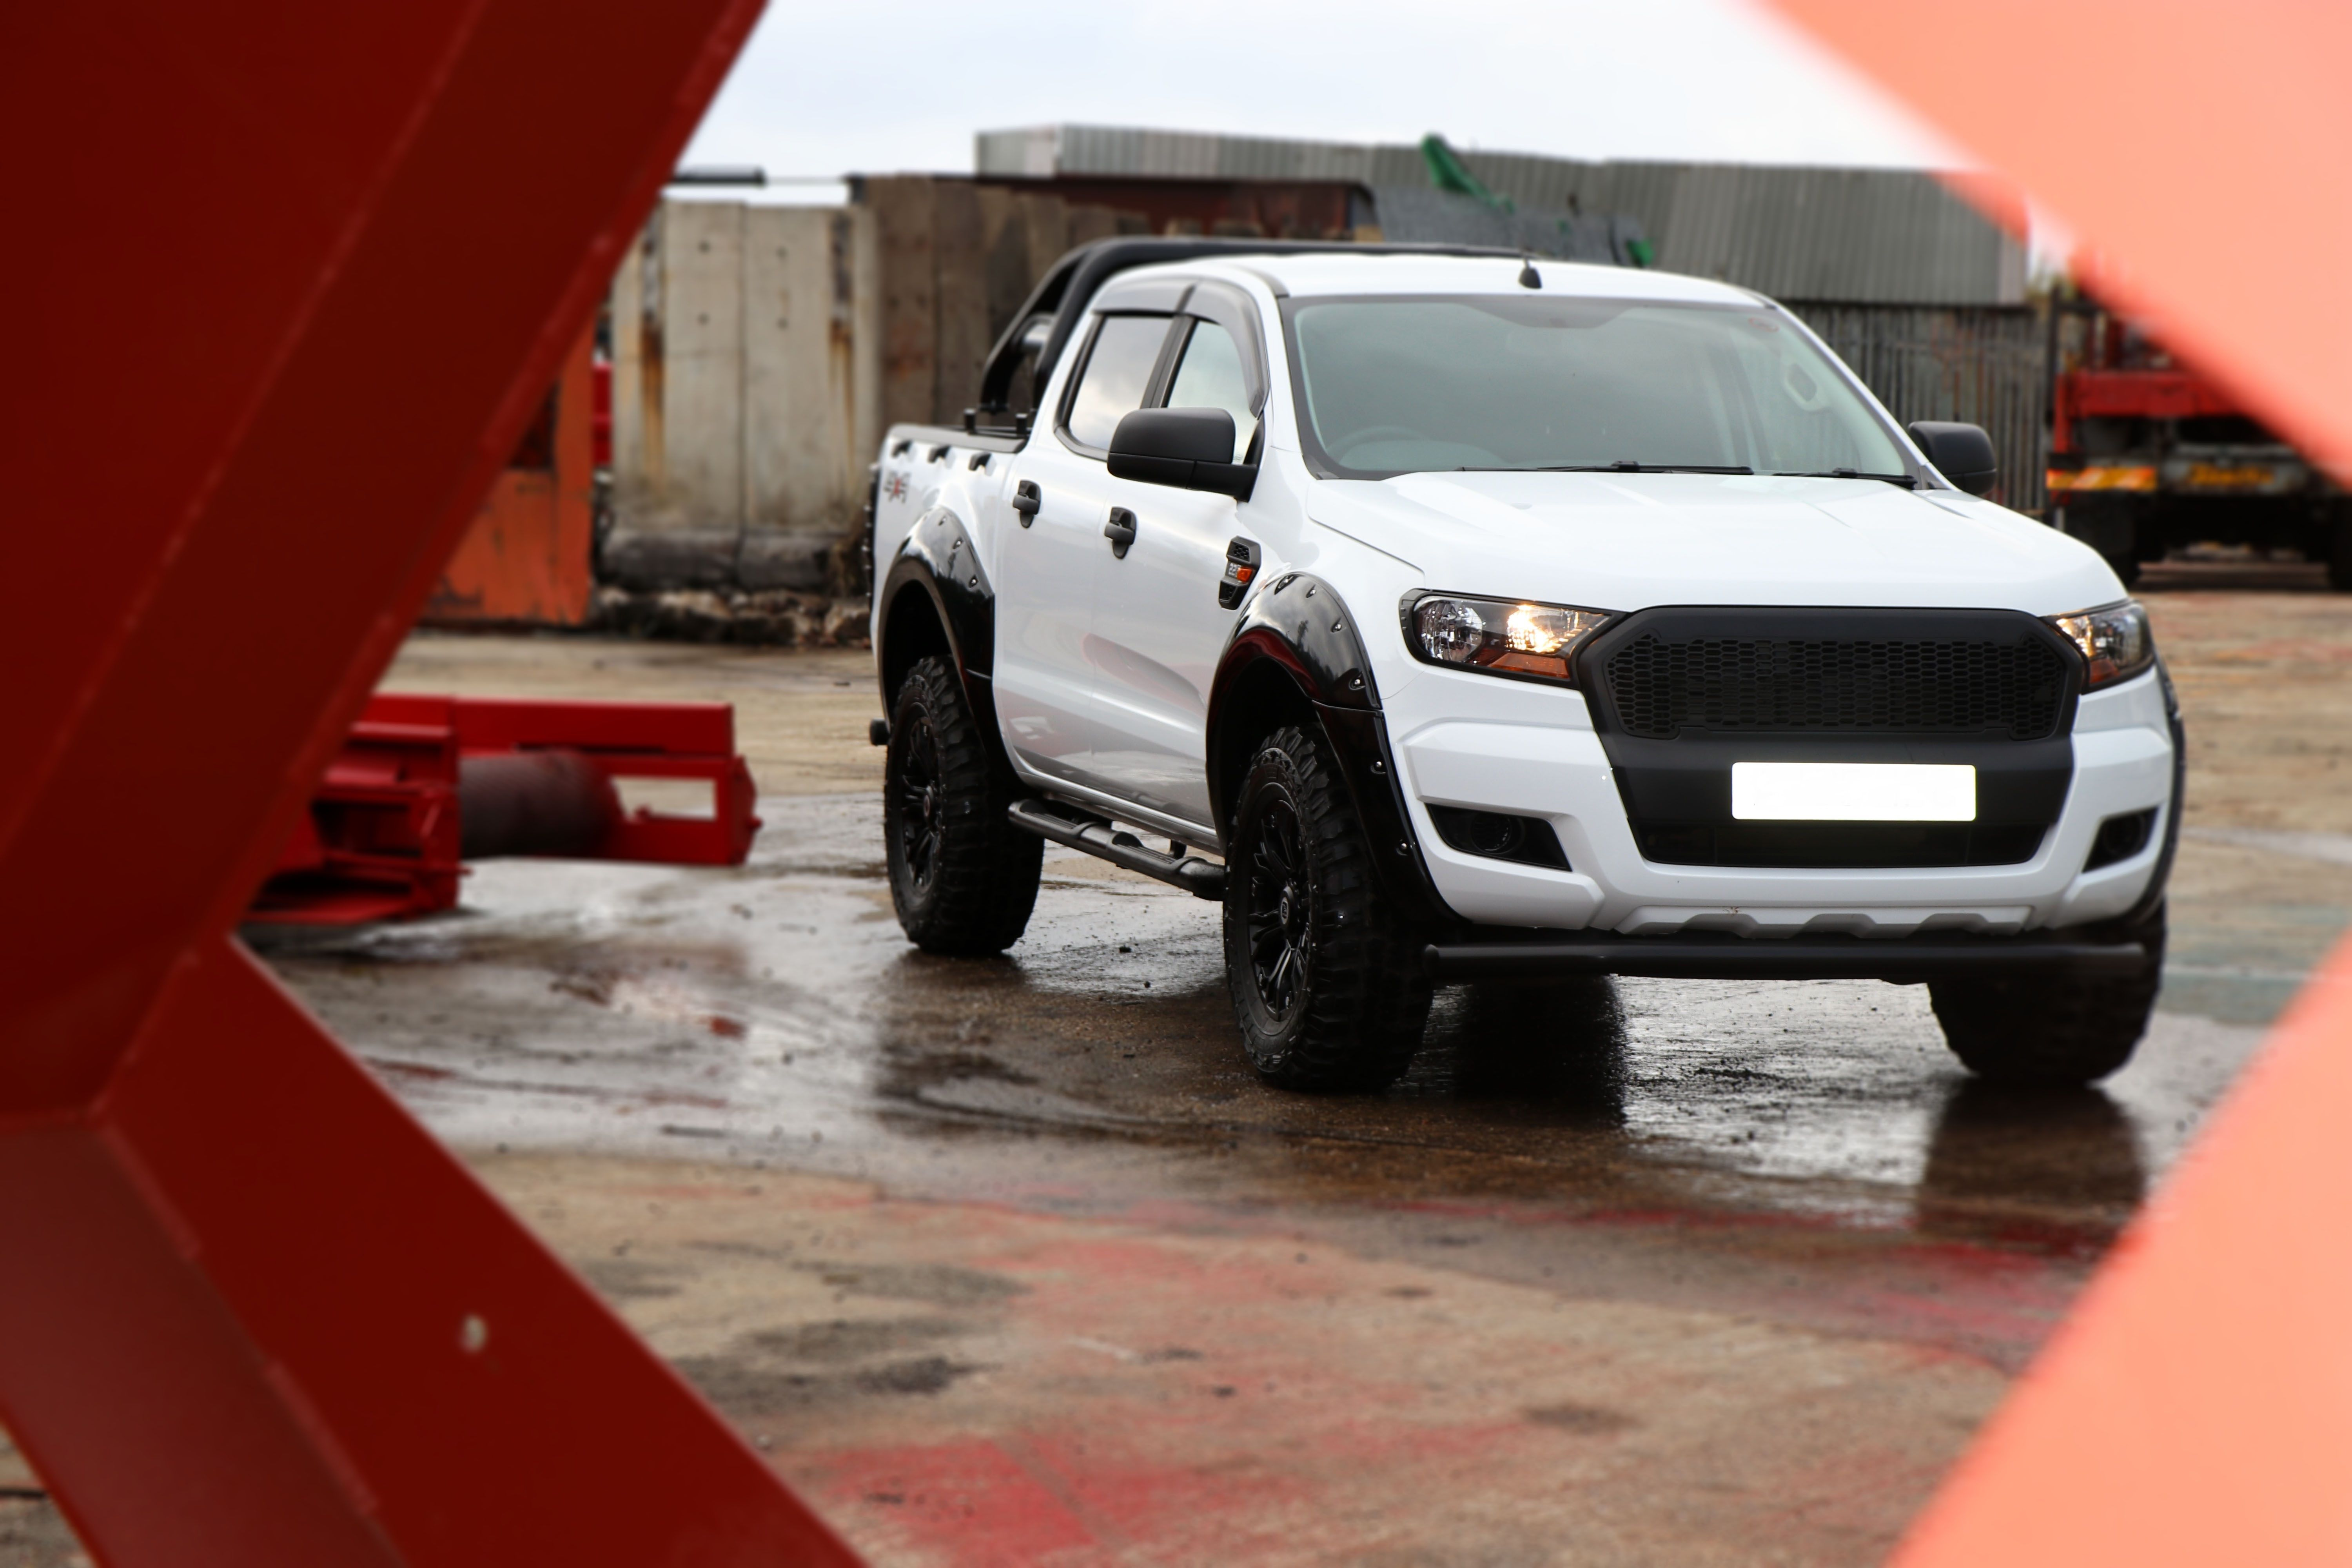 Introducing our seeker raptor conversion for preowned t7